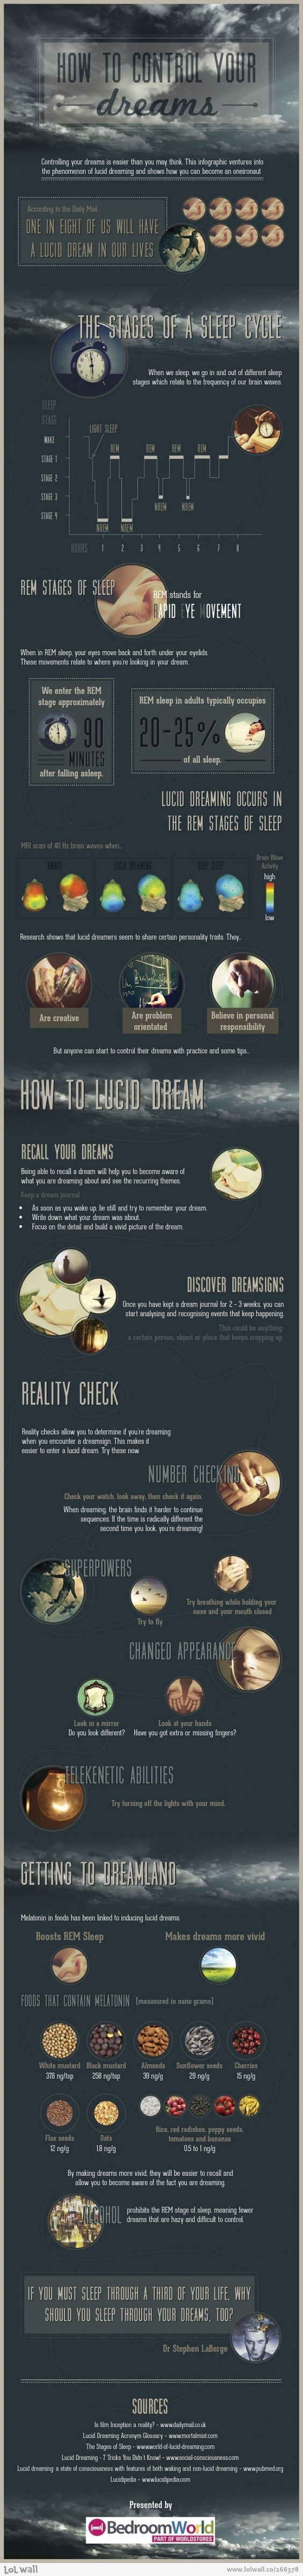 How to control your dreams?  from www.lolwall.co